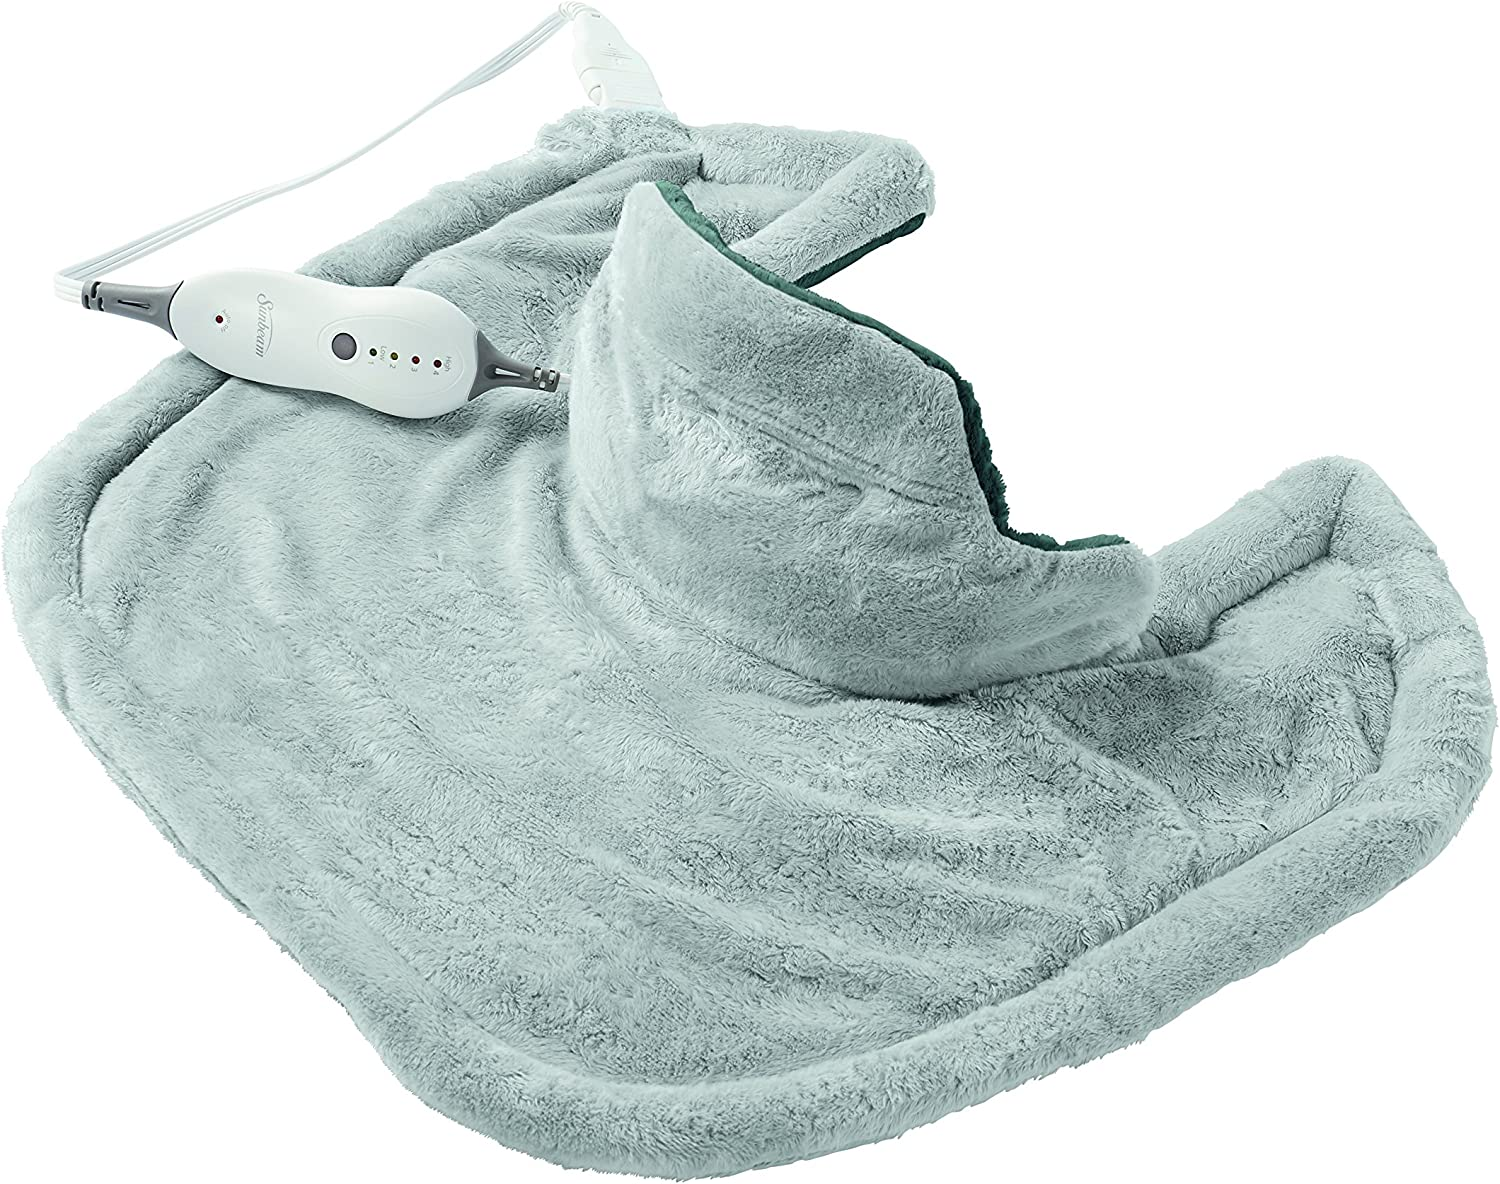 Sunbeam Heating Pad for Neck & Shoulder Pain Relief | Standard Size Renue, 4 Heat Settings with Auto Shutoff | Light Blue, 22 Inch x 19 Inch